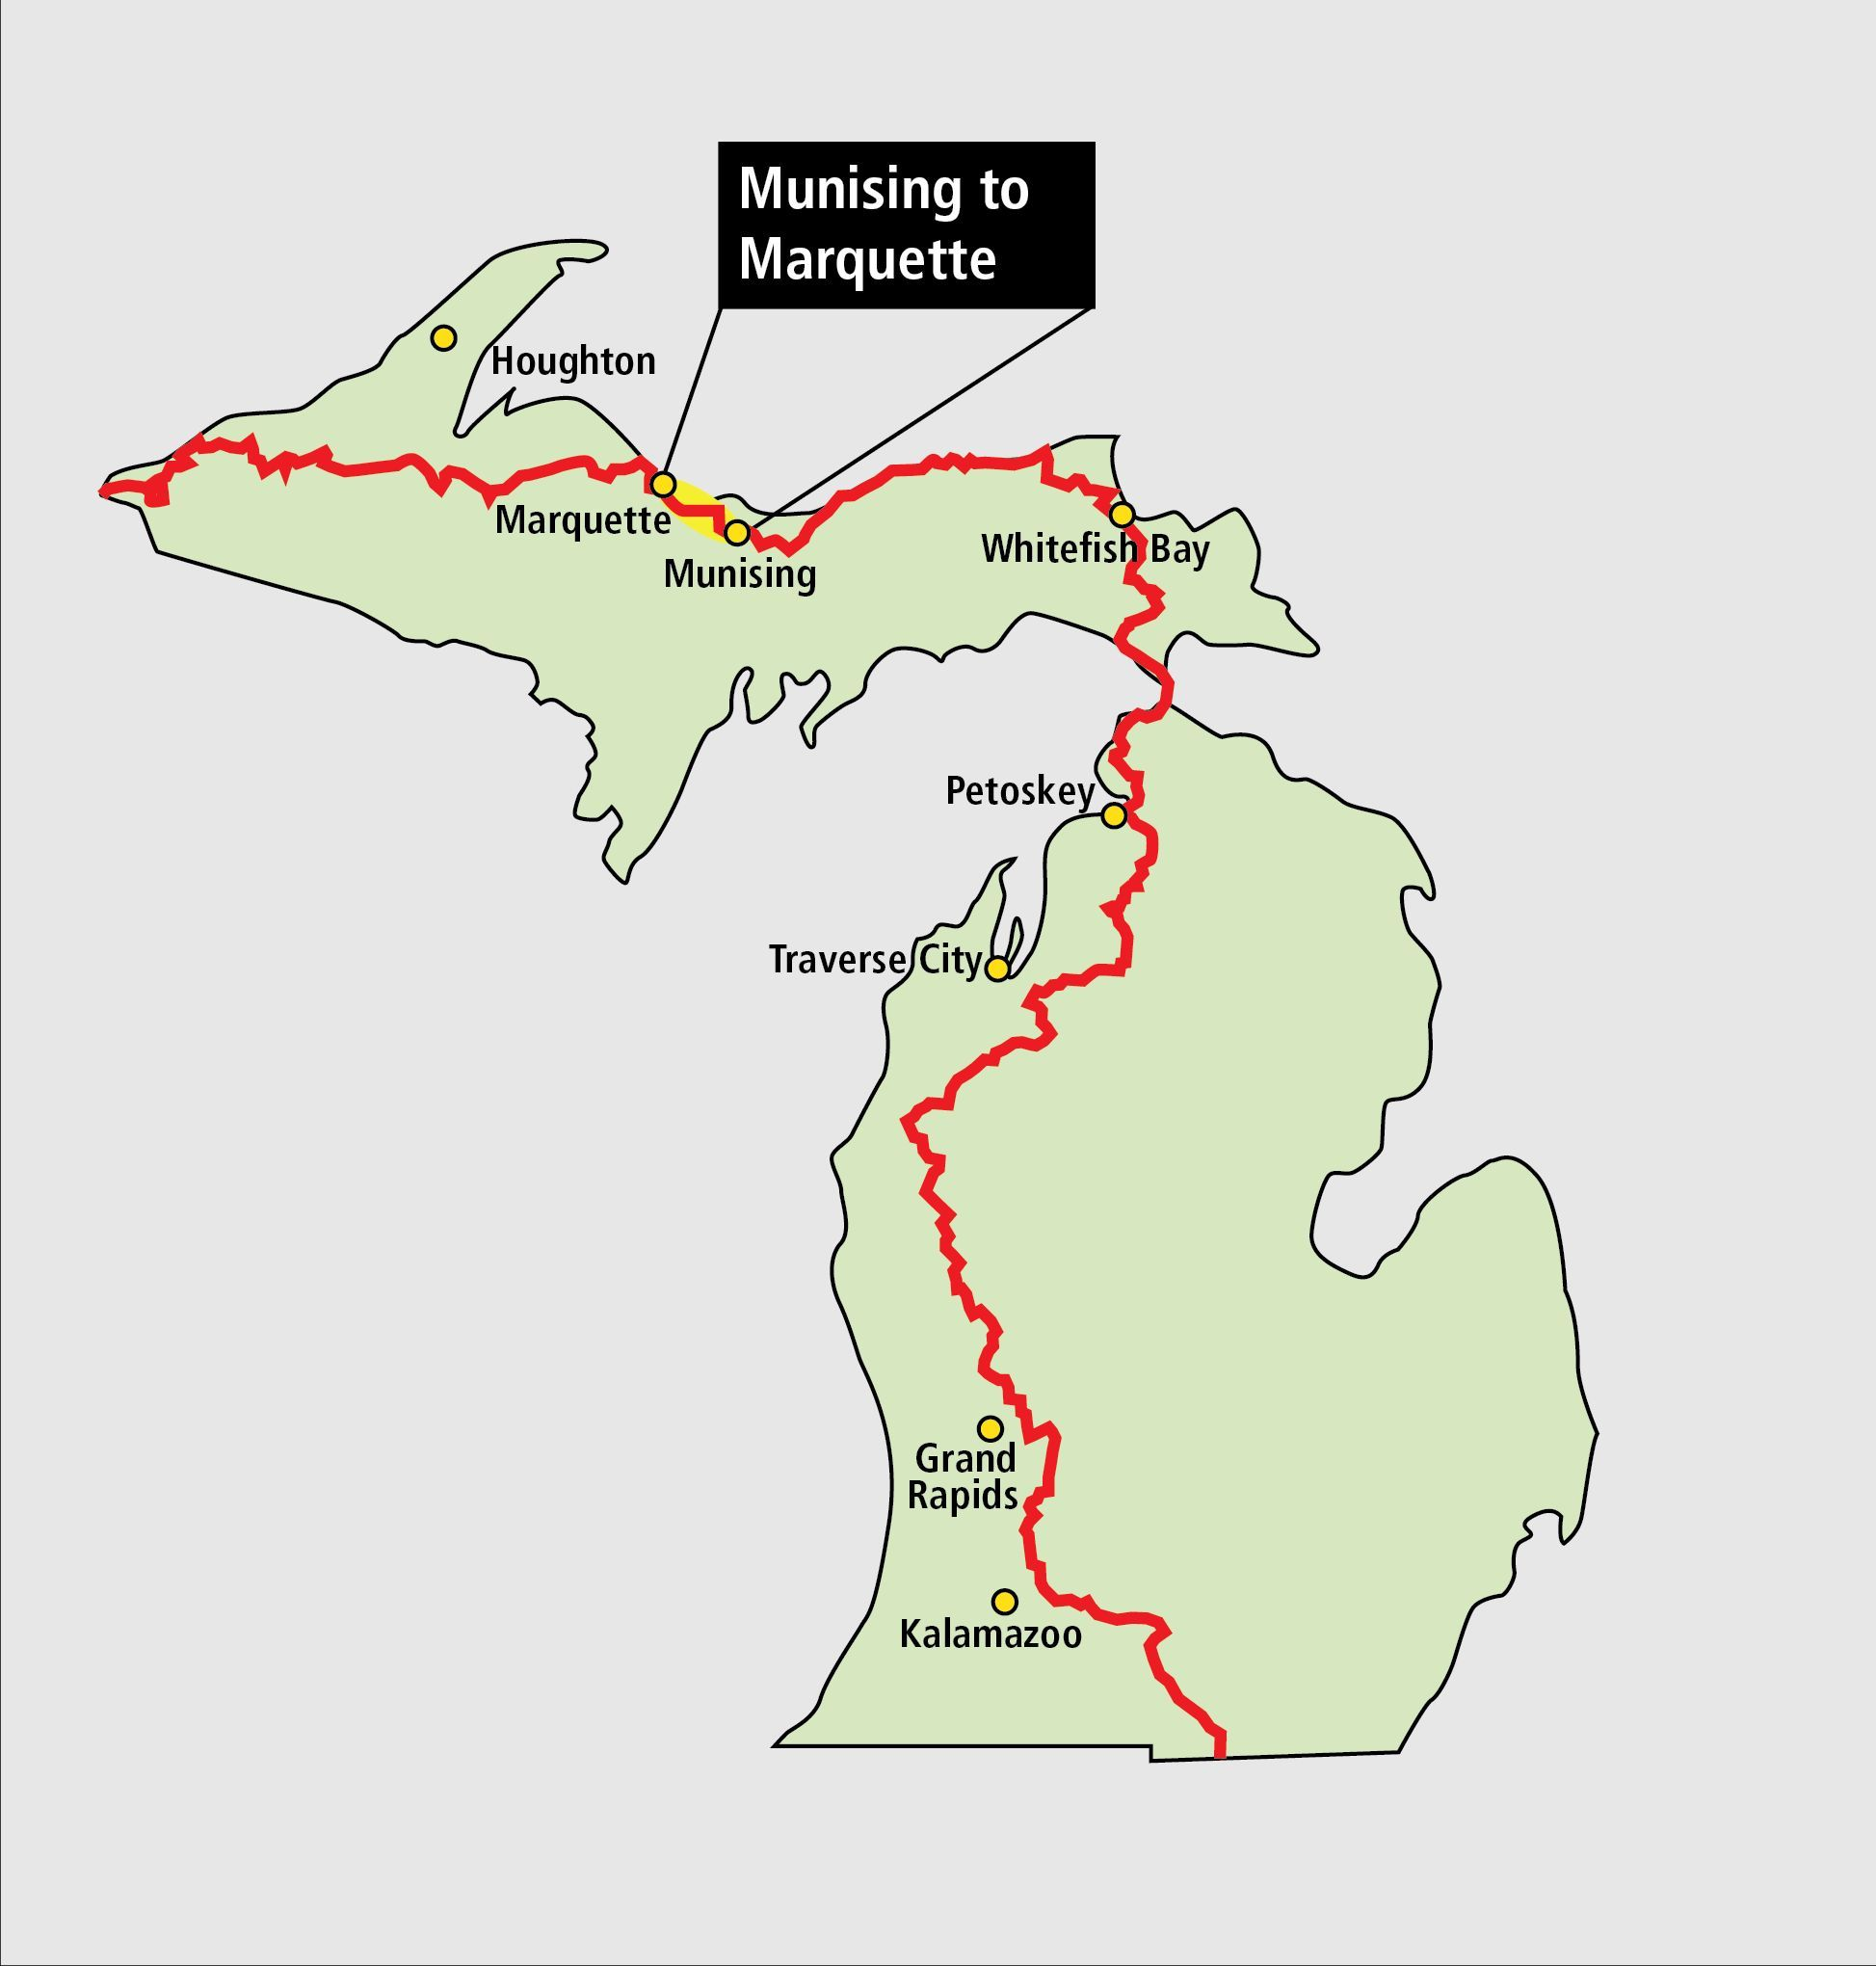 Munising to Marquette